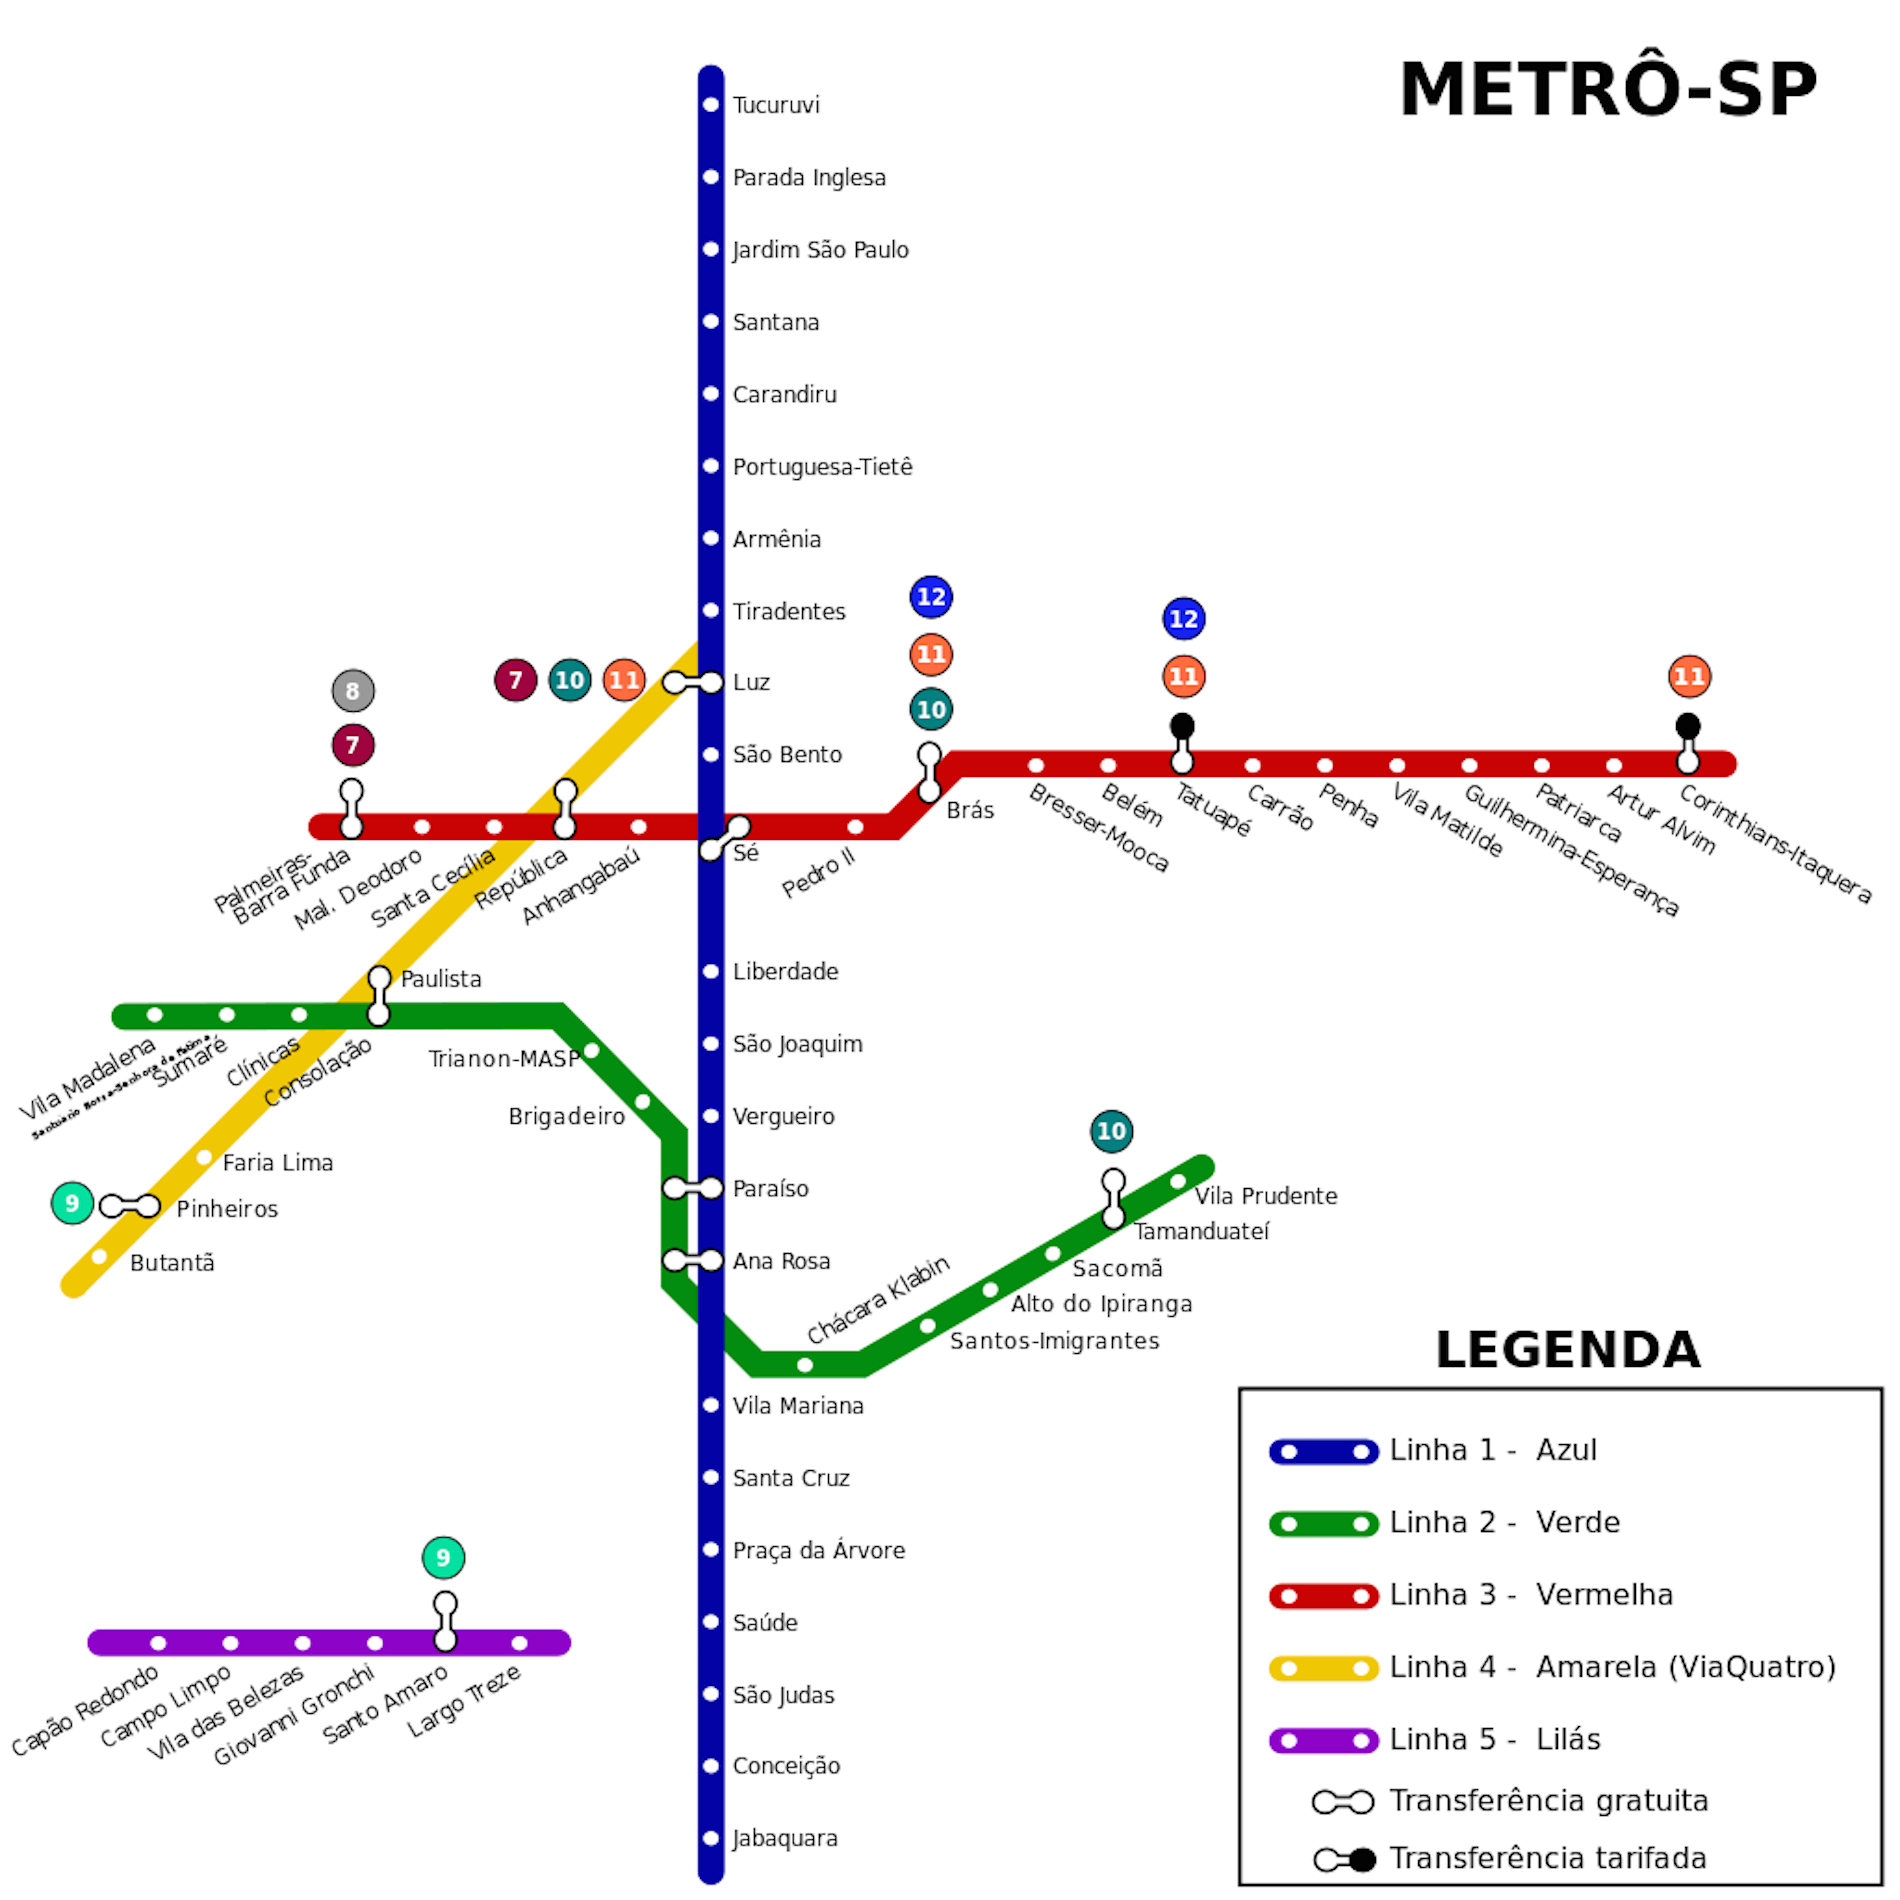 A Users Guide to The So Paulo Public Metro System